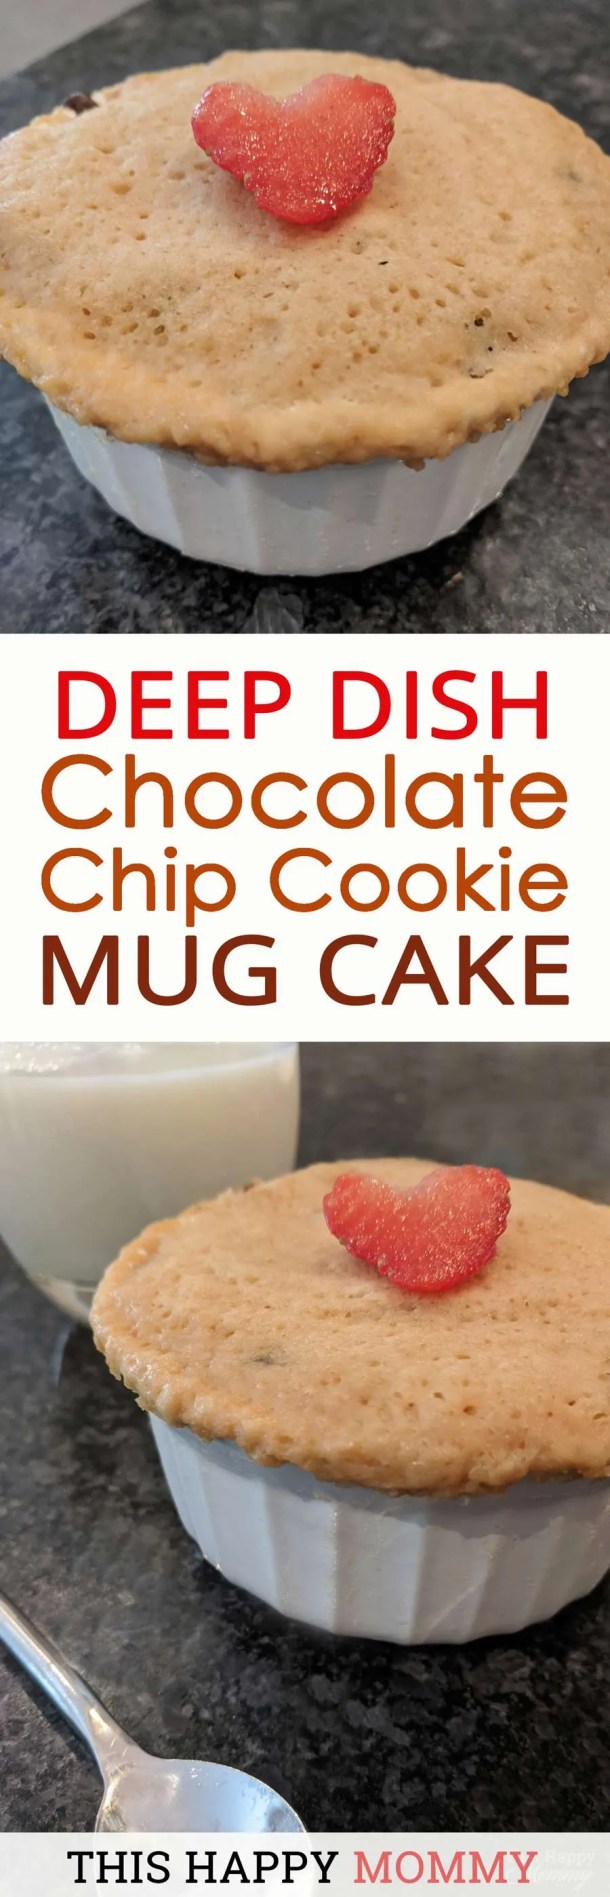 You have to try this! With the flavor of your favorite chocolate chip cookie and the texture of a light and fluffy cake, Deep Dish Chocolate Chip Cookie Mug Cake is a perfect single-serving dessert. Dig right into this lightly-sweetened vanilla cookie cake with melted chocolate chips. | thishappymommy.com